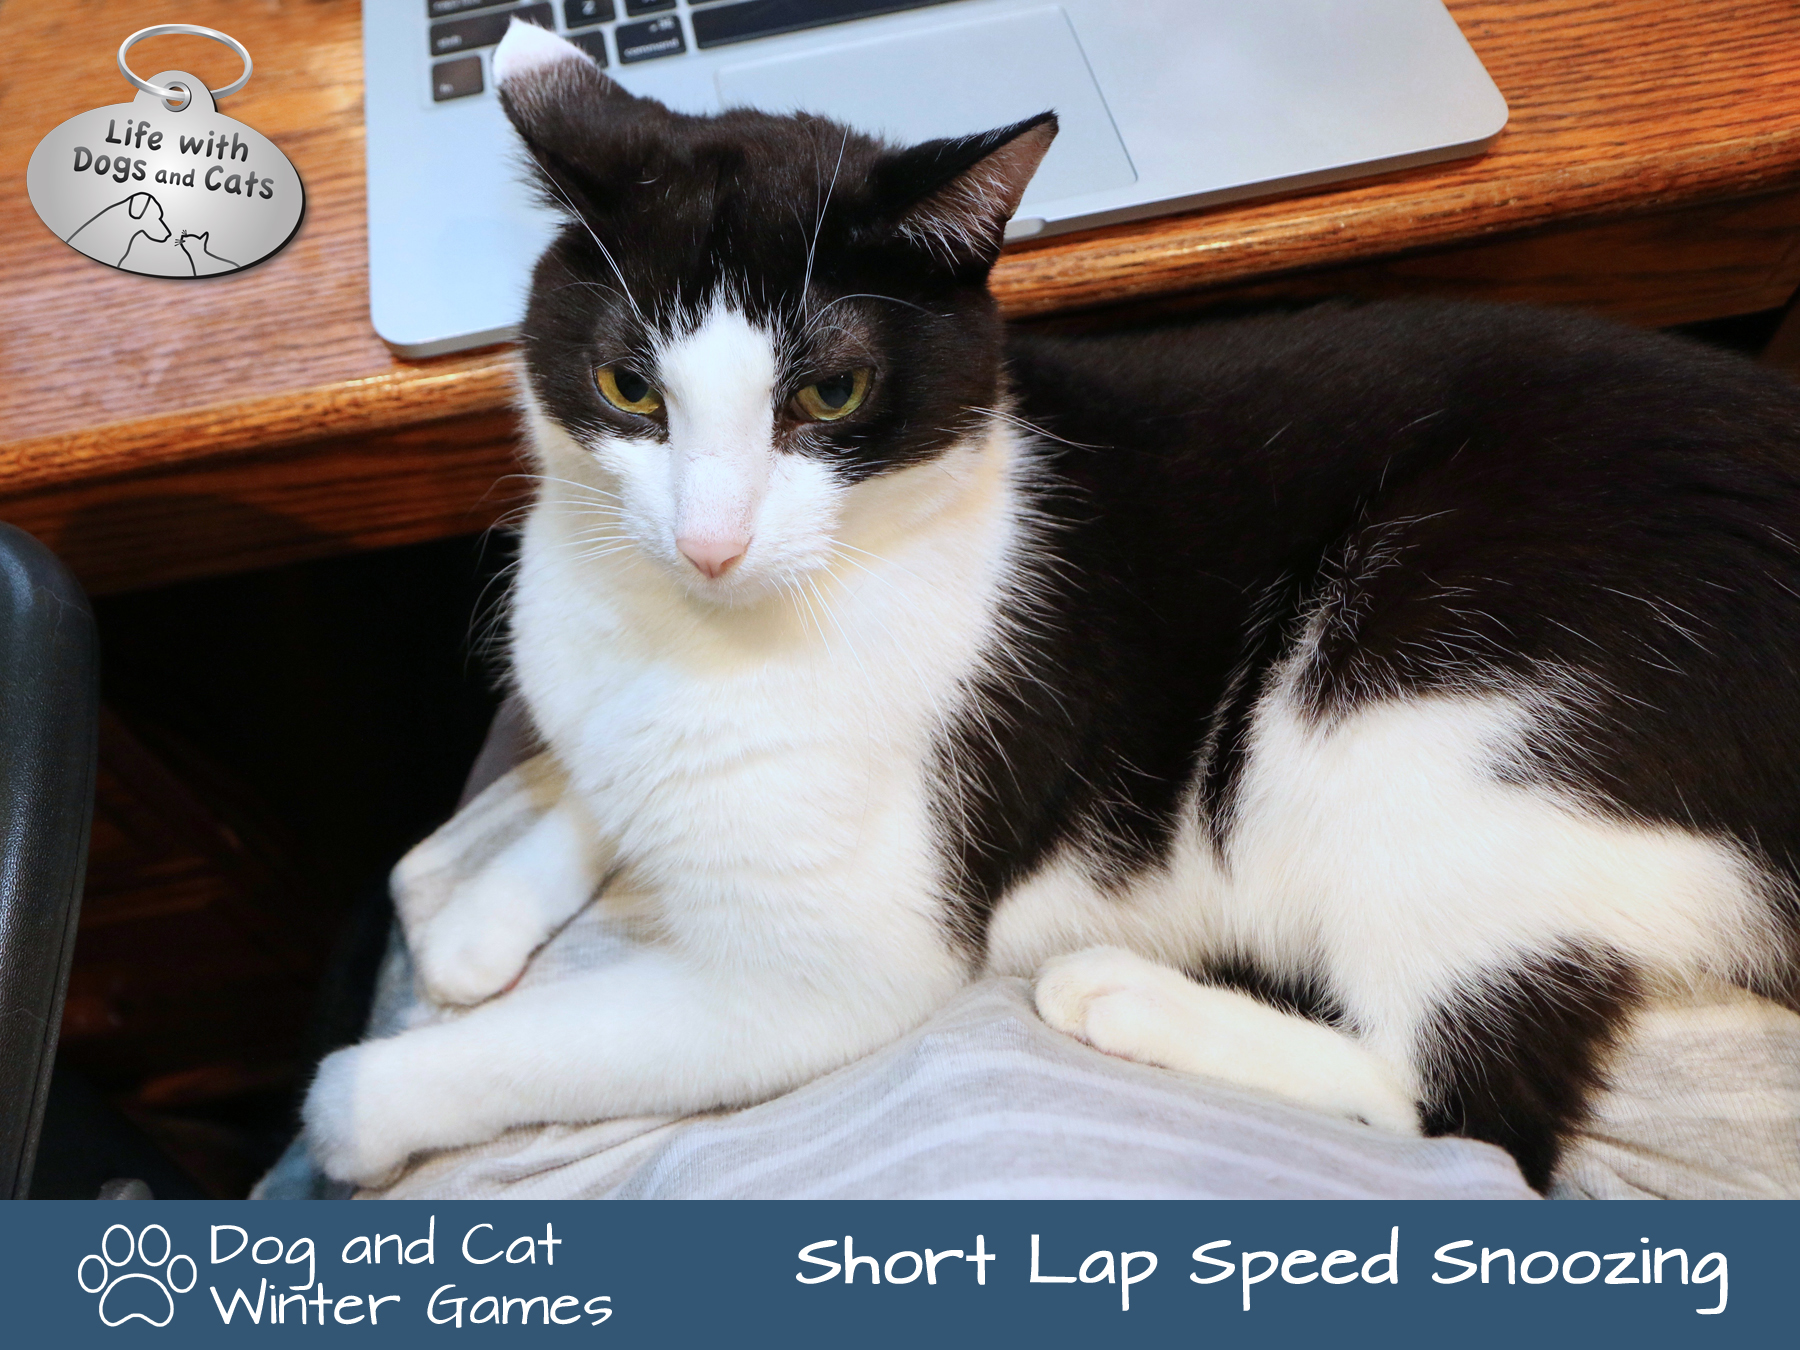 Dog and Cat Winter Games: Short Lap Speed Snoozing